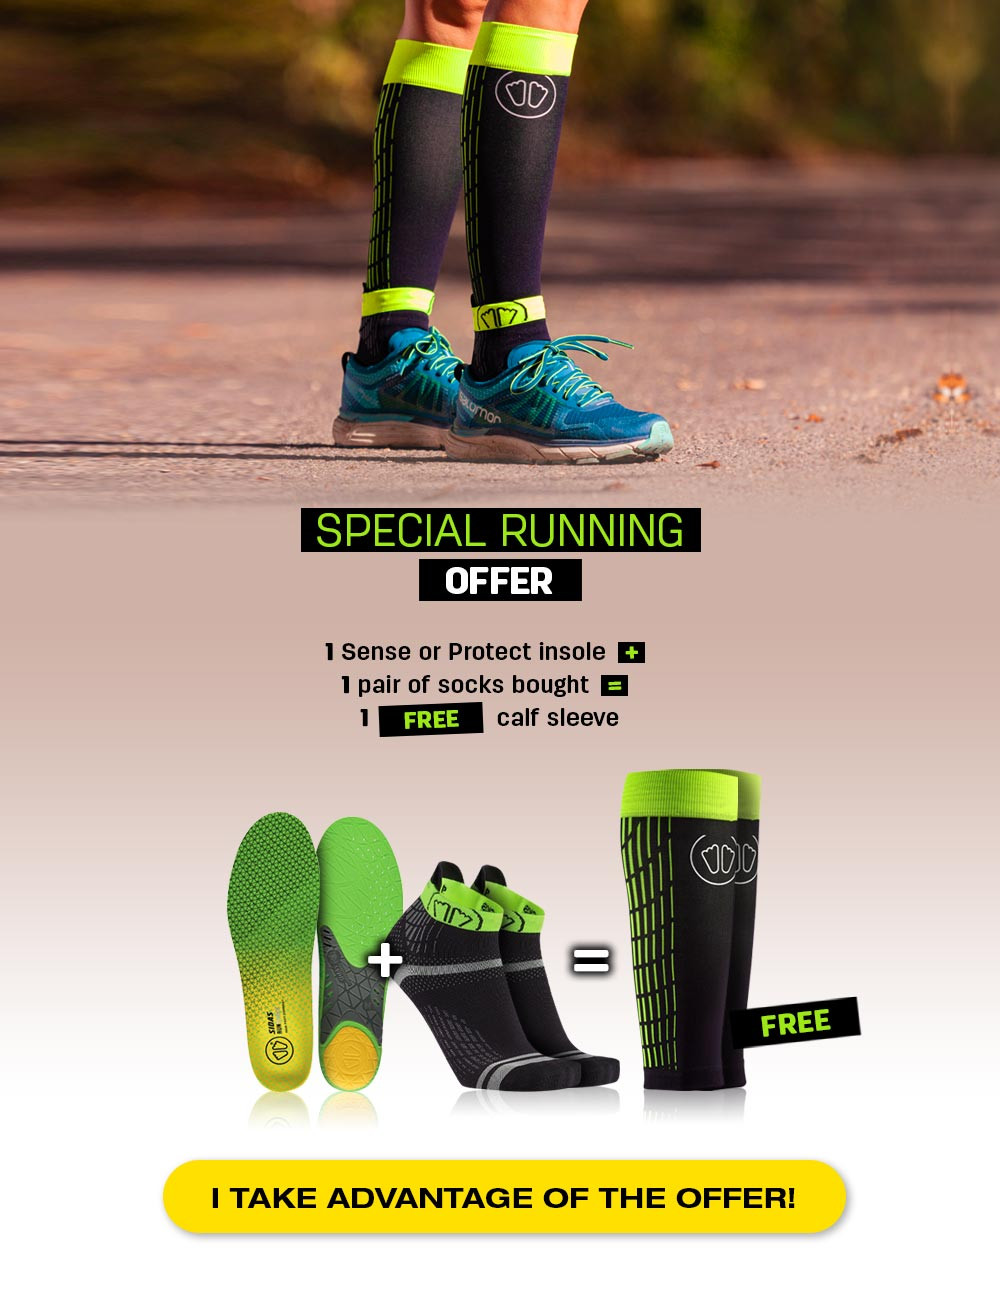 Buy a pair of running insole 3D or 3Feet and a pair of socks and get your free running calf!